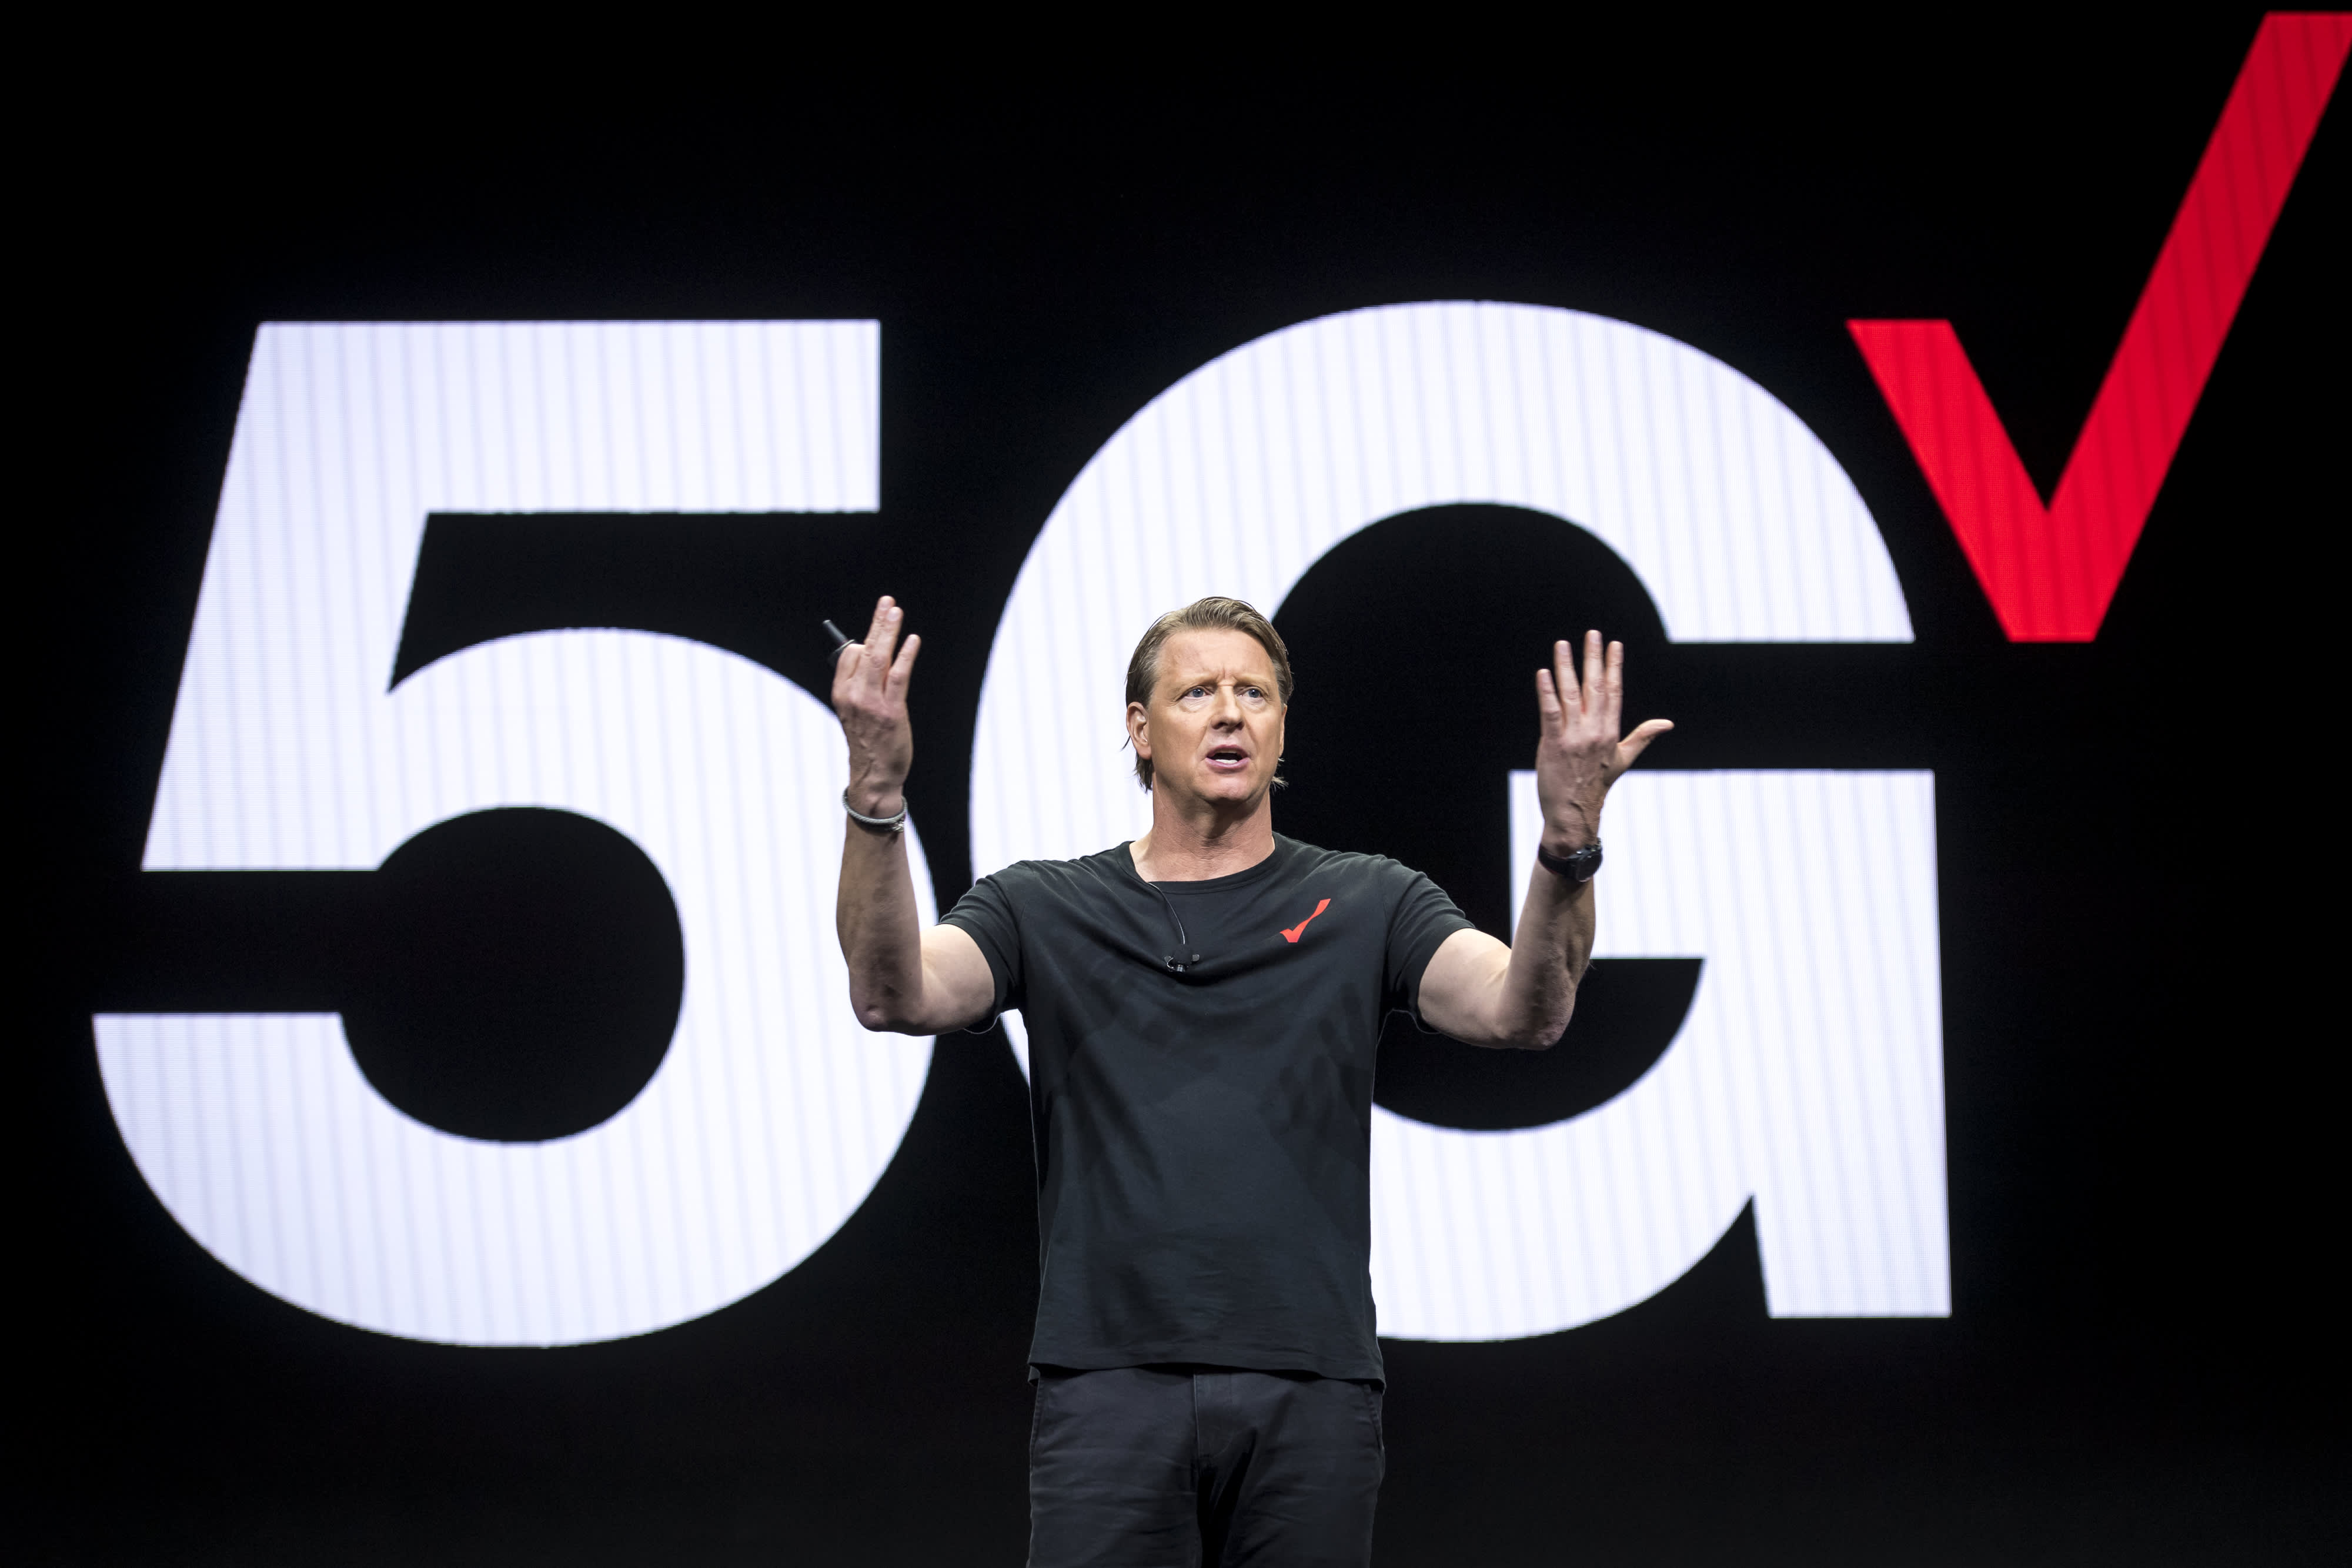 Verizon CEO: We're doing just fine without using any equipment from Chinese tech giant Huawei